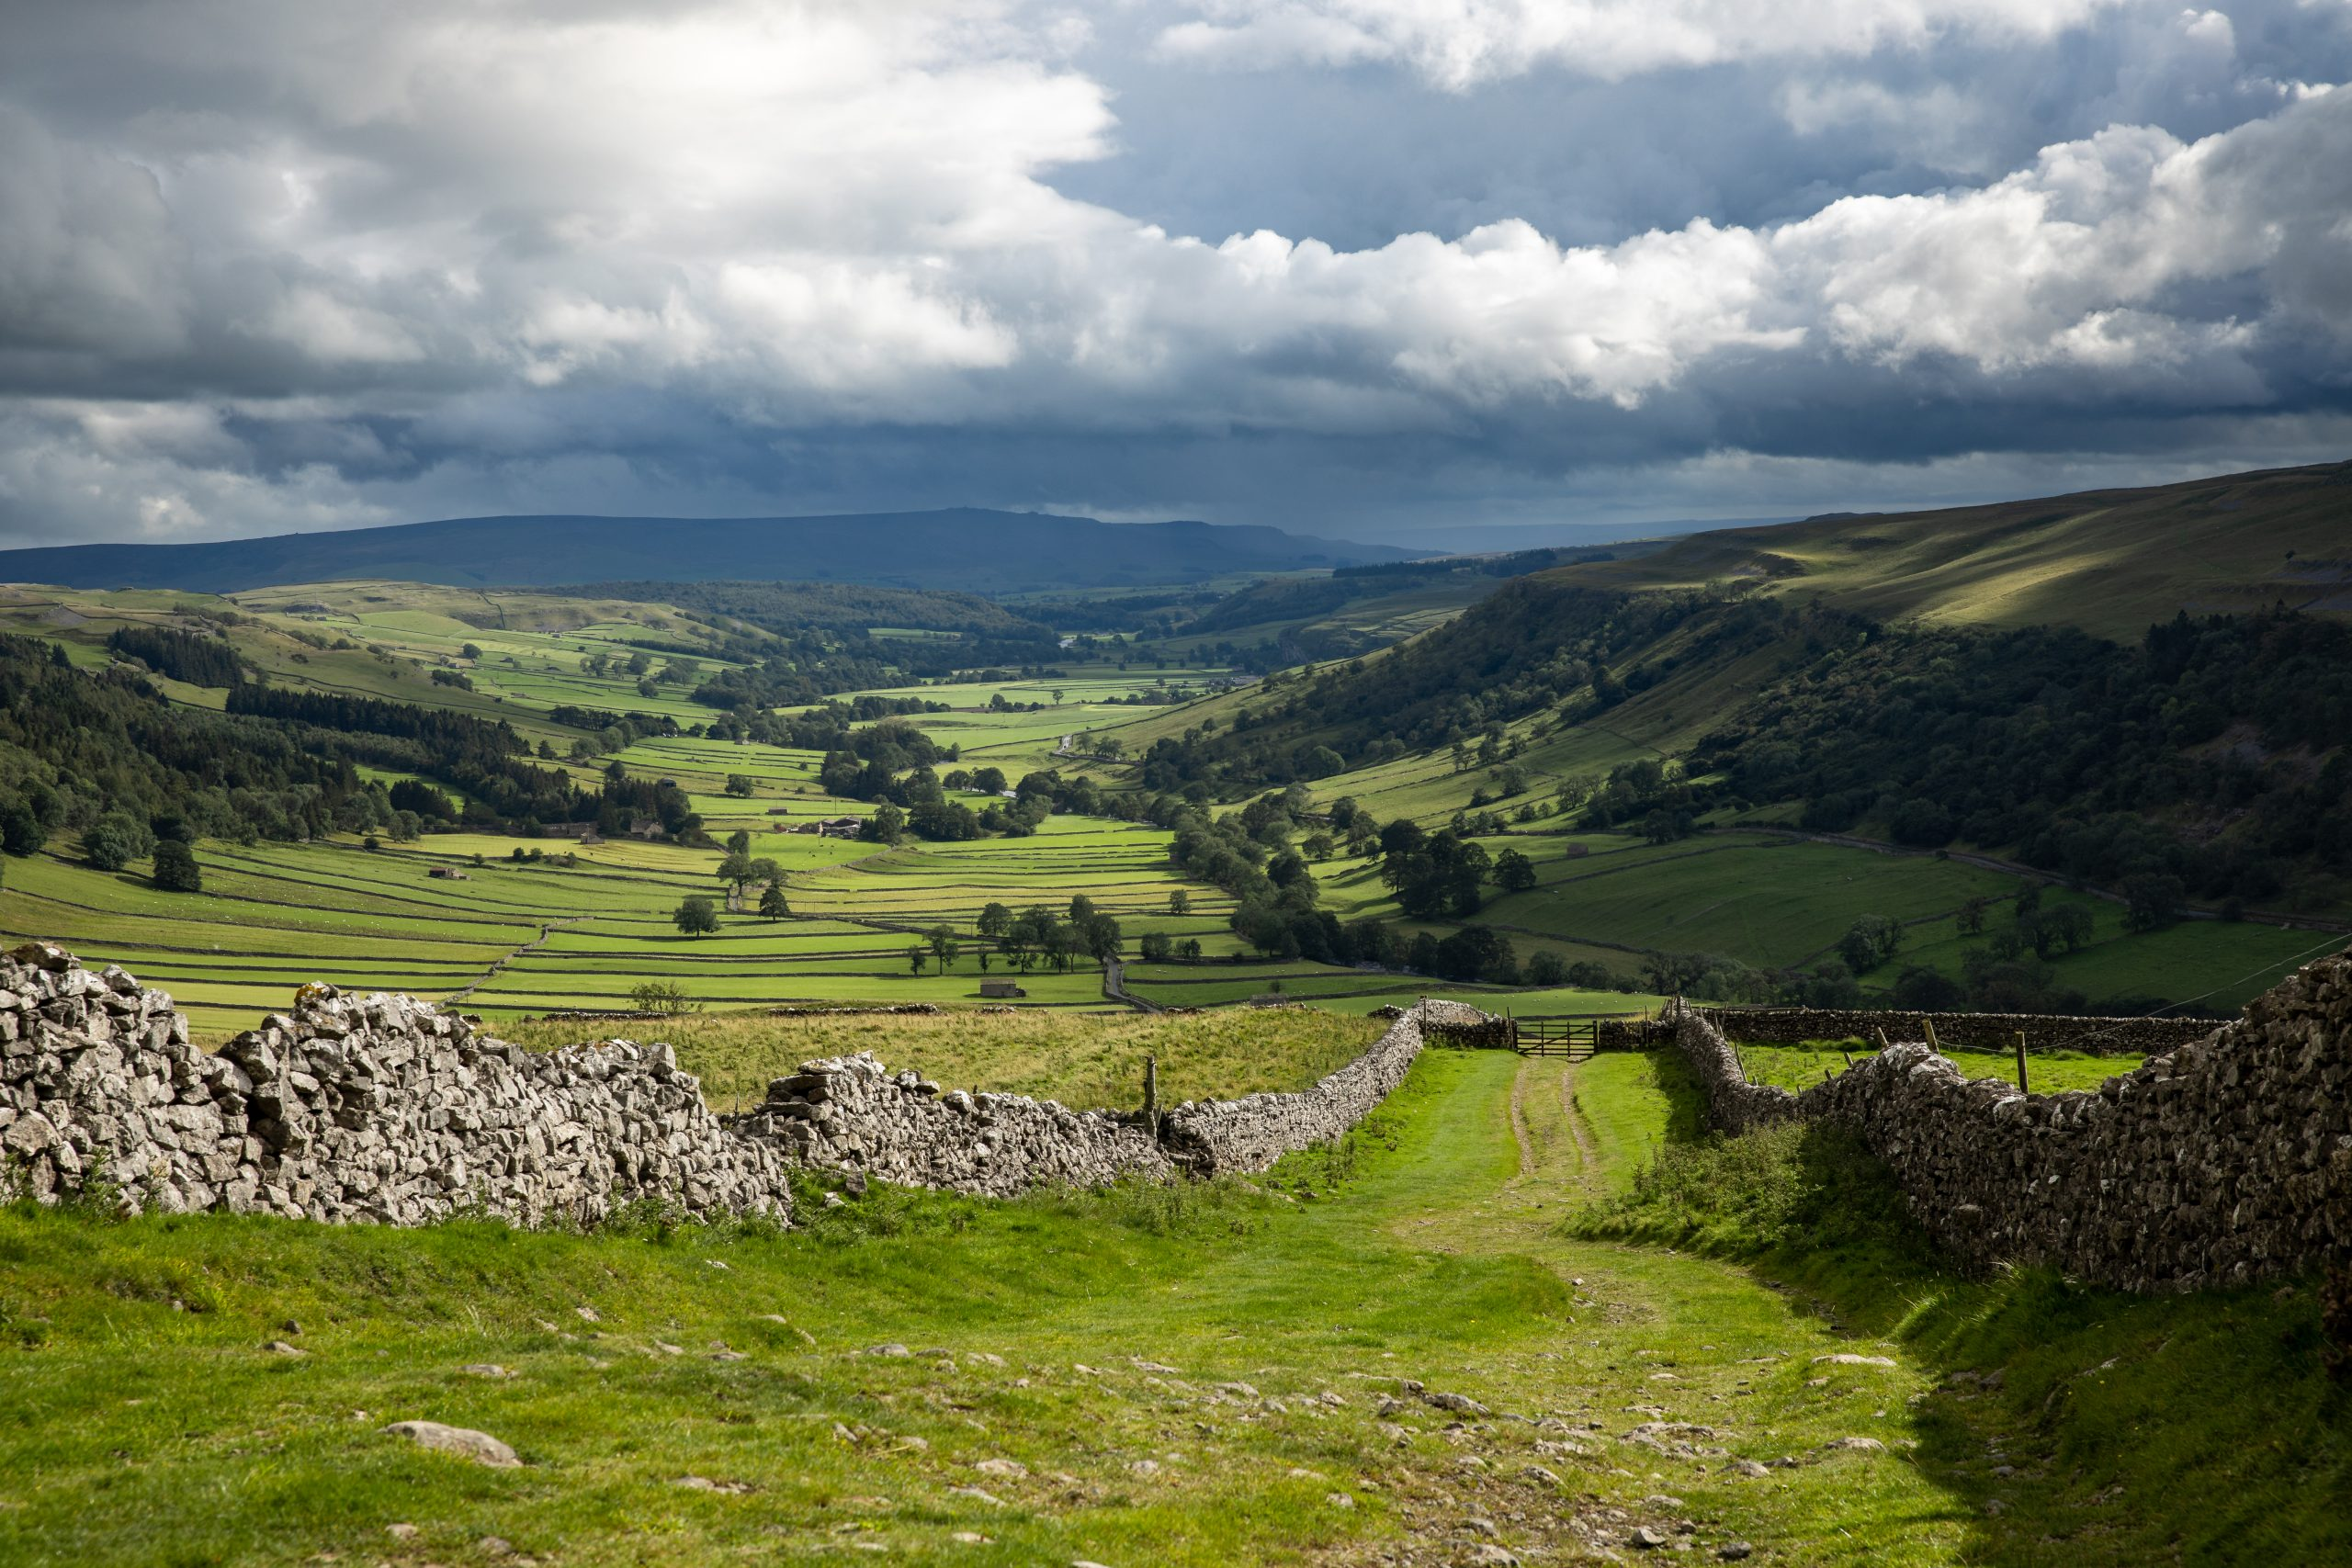 The beautiful green fields of Wharfedale valley around Kettlewell, seen during a guided walk in the Yorkshire Dales